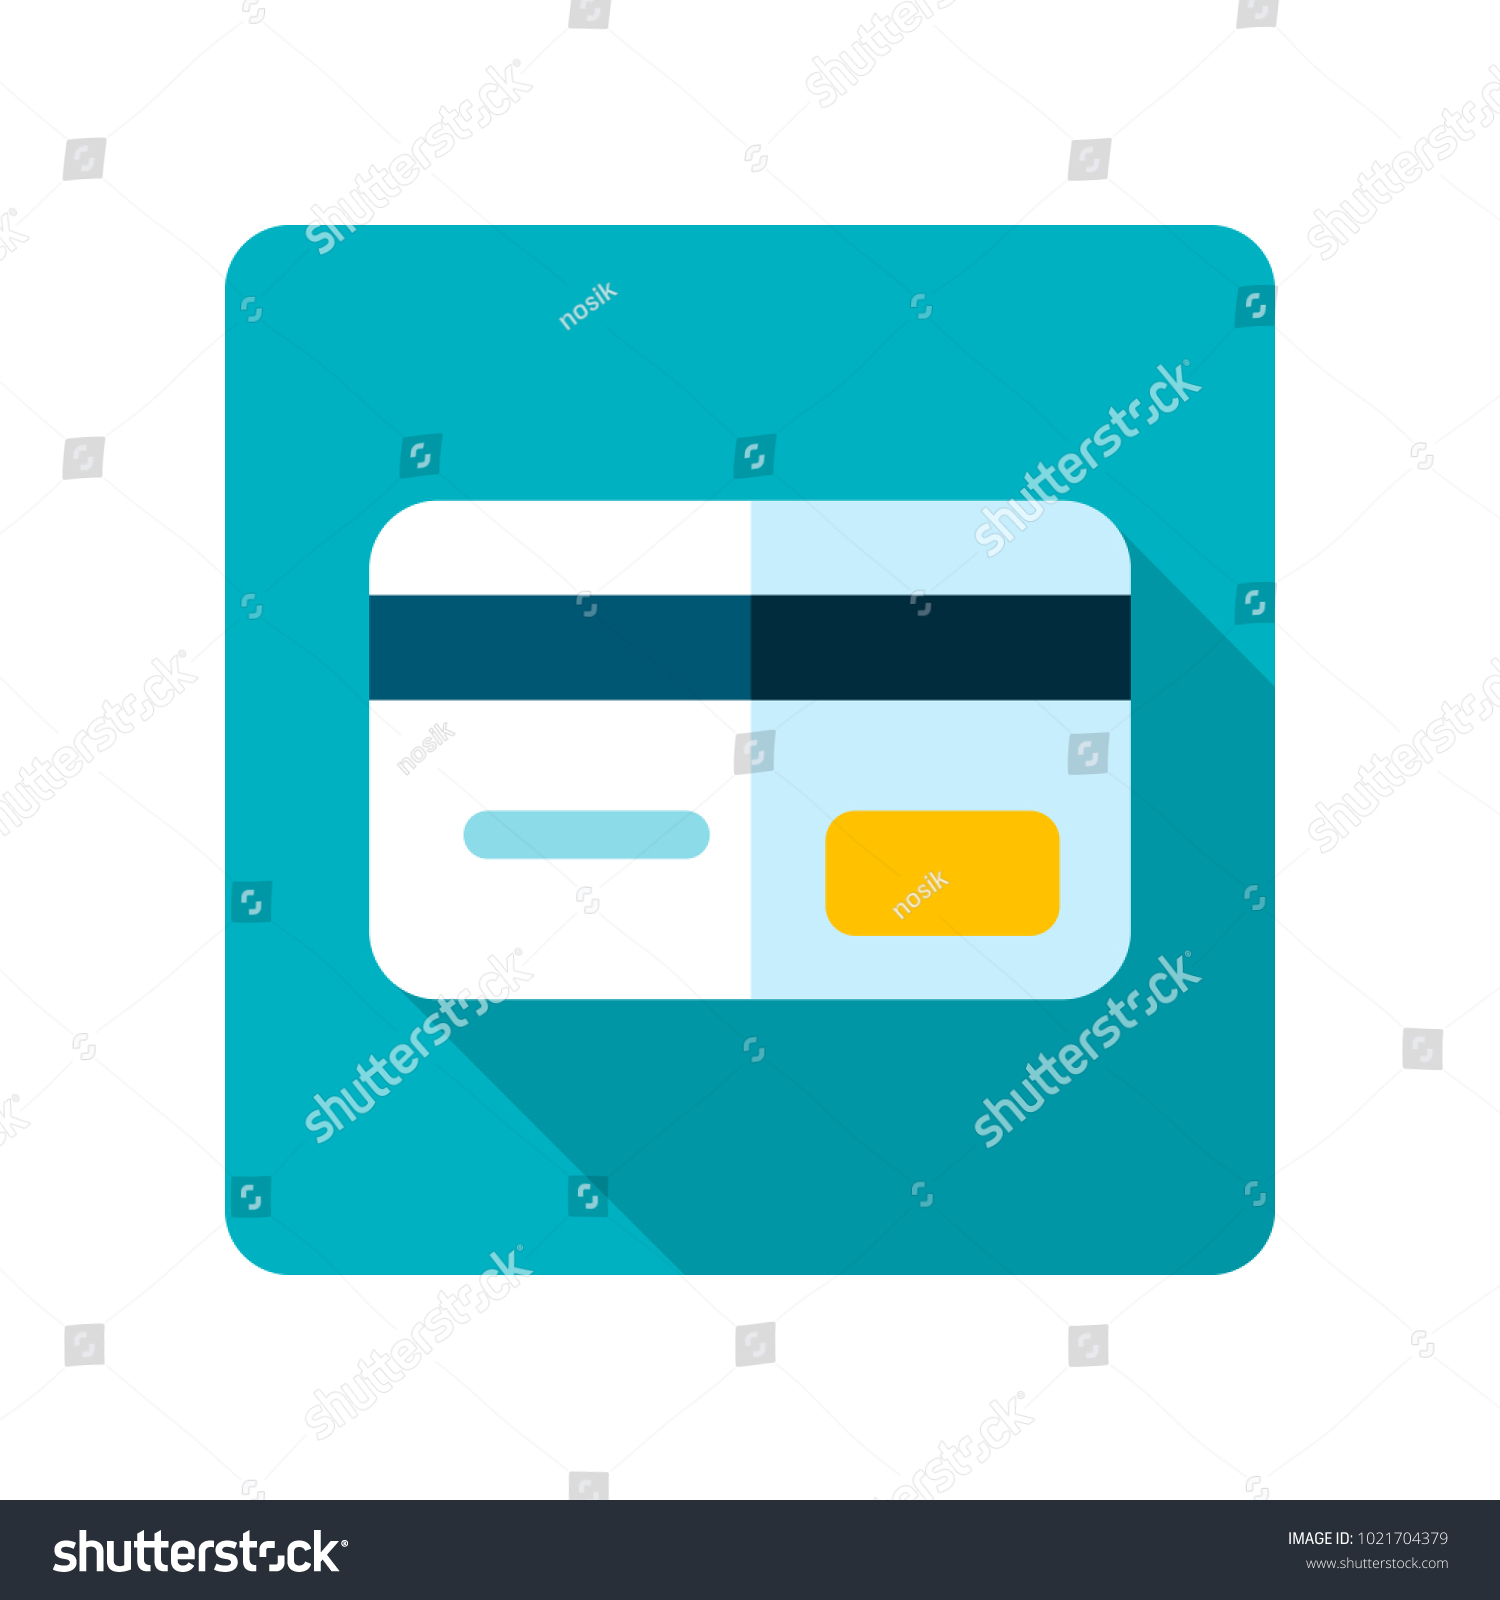 credit card icon ecommerce sign graph stock vector hd royalty free rh shutterstock com black and white credit card logos vector credit card logo vector images